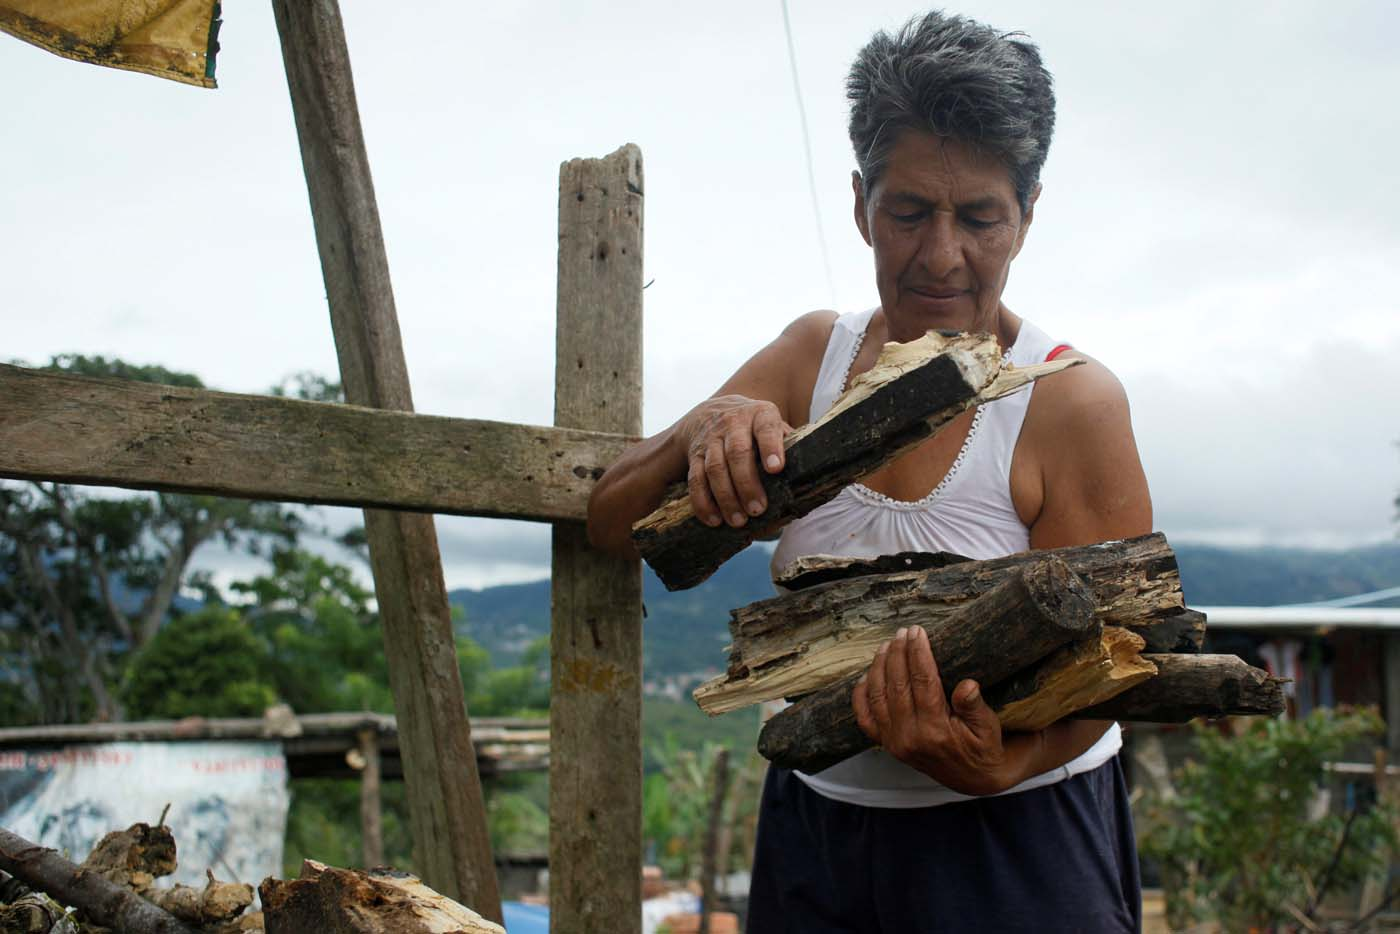 Maria Garcia carries firewood at her house in San Cristobal, Venezuela August 5, 2017. Picture taken August 5, 2017. REUTERS/Luis Parada